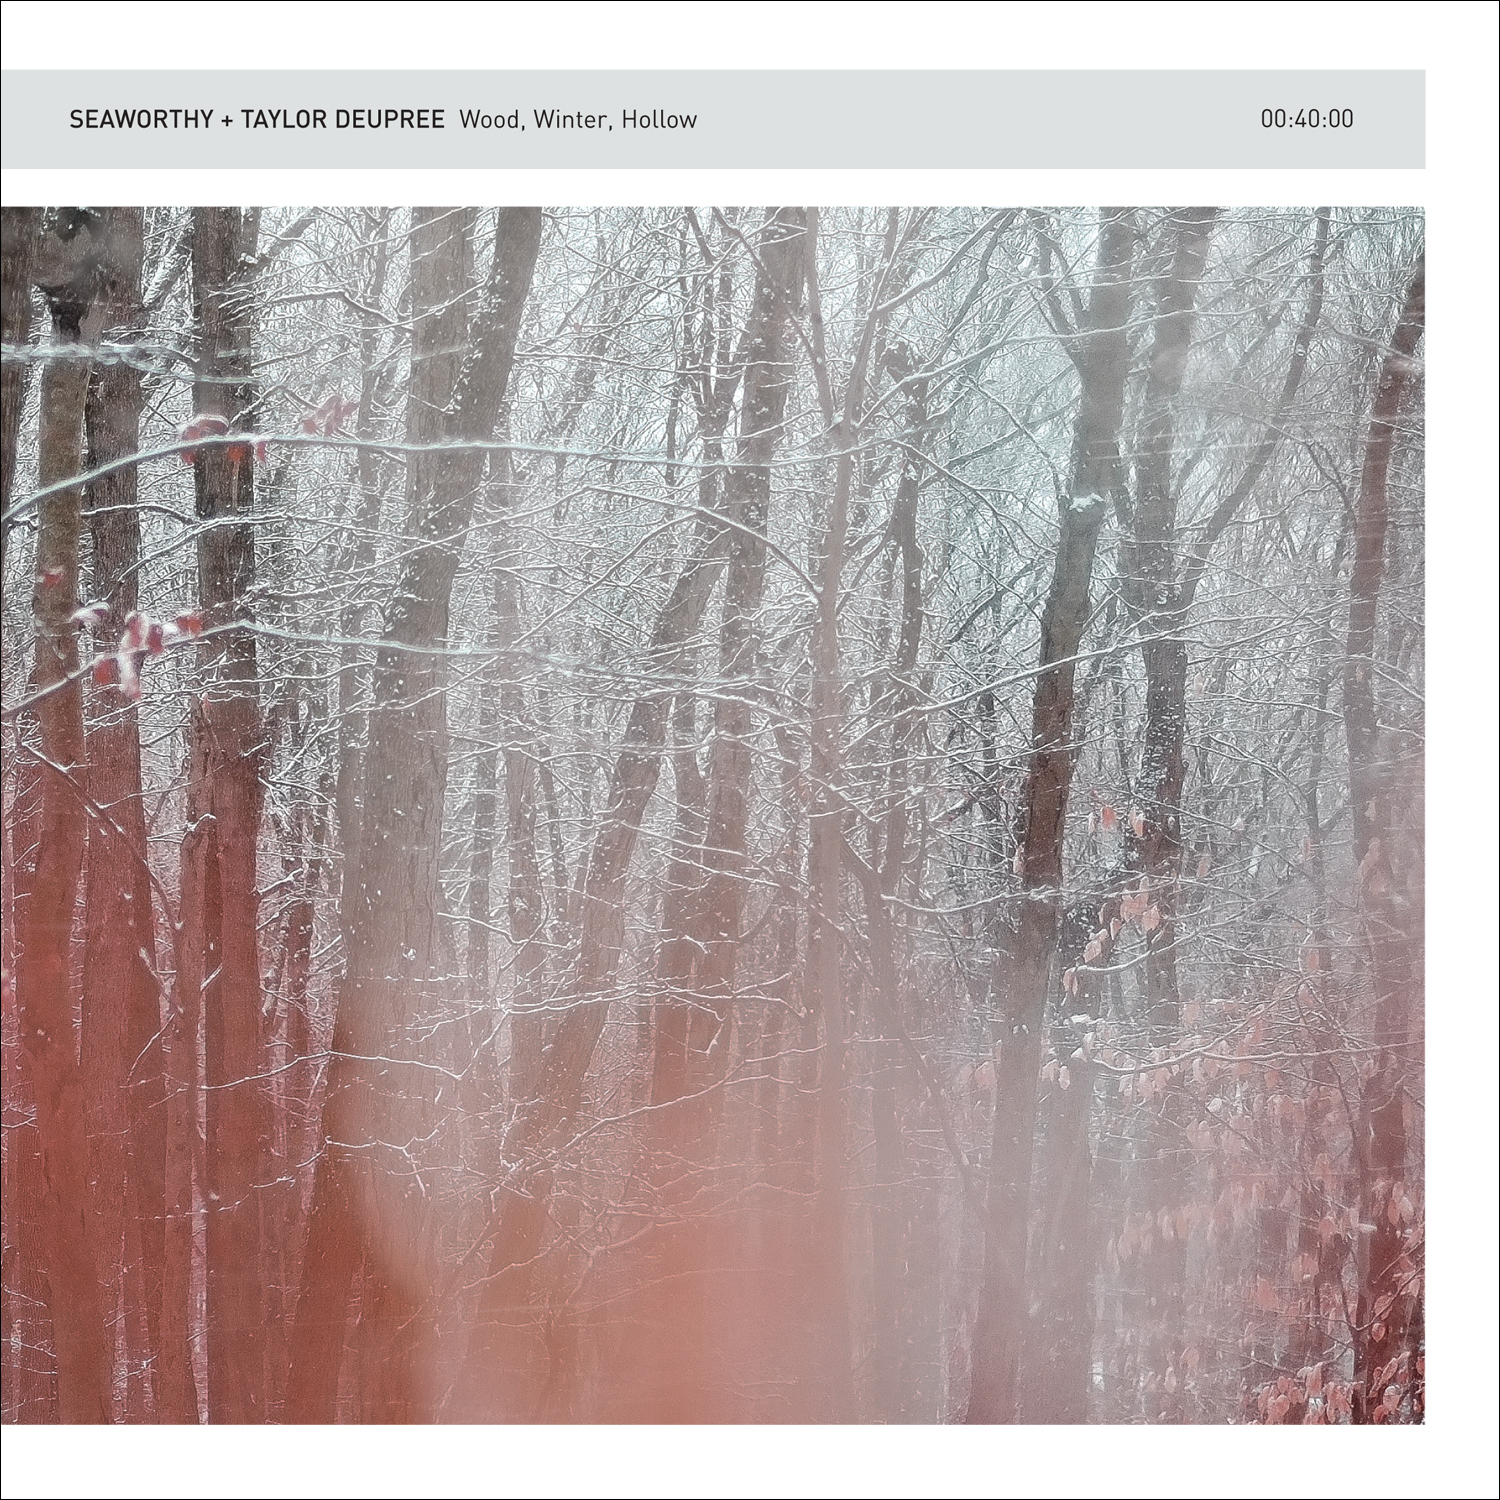 Seaworthy + Taylor Deupree – Wood, Winter, Hollow